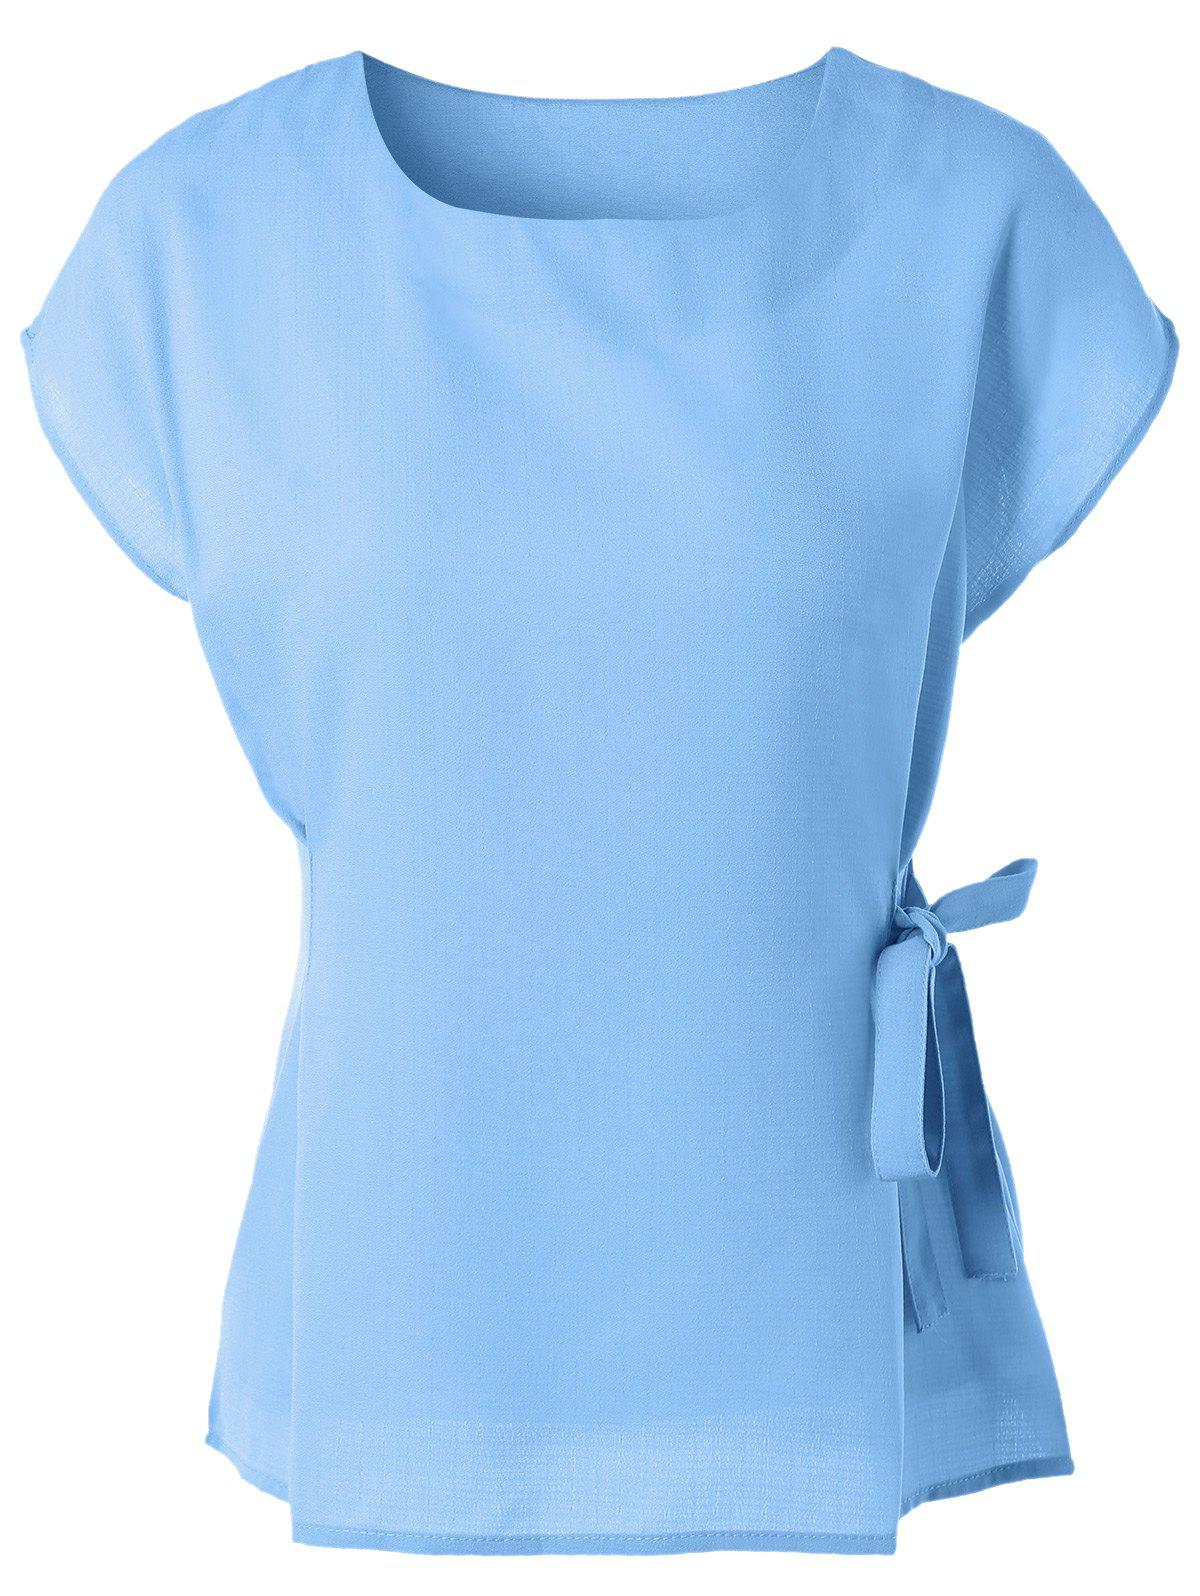 Cap Sleeve Candy Color Slimming Blouse - LIGHT BLUE XL